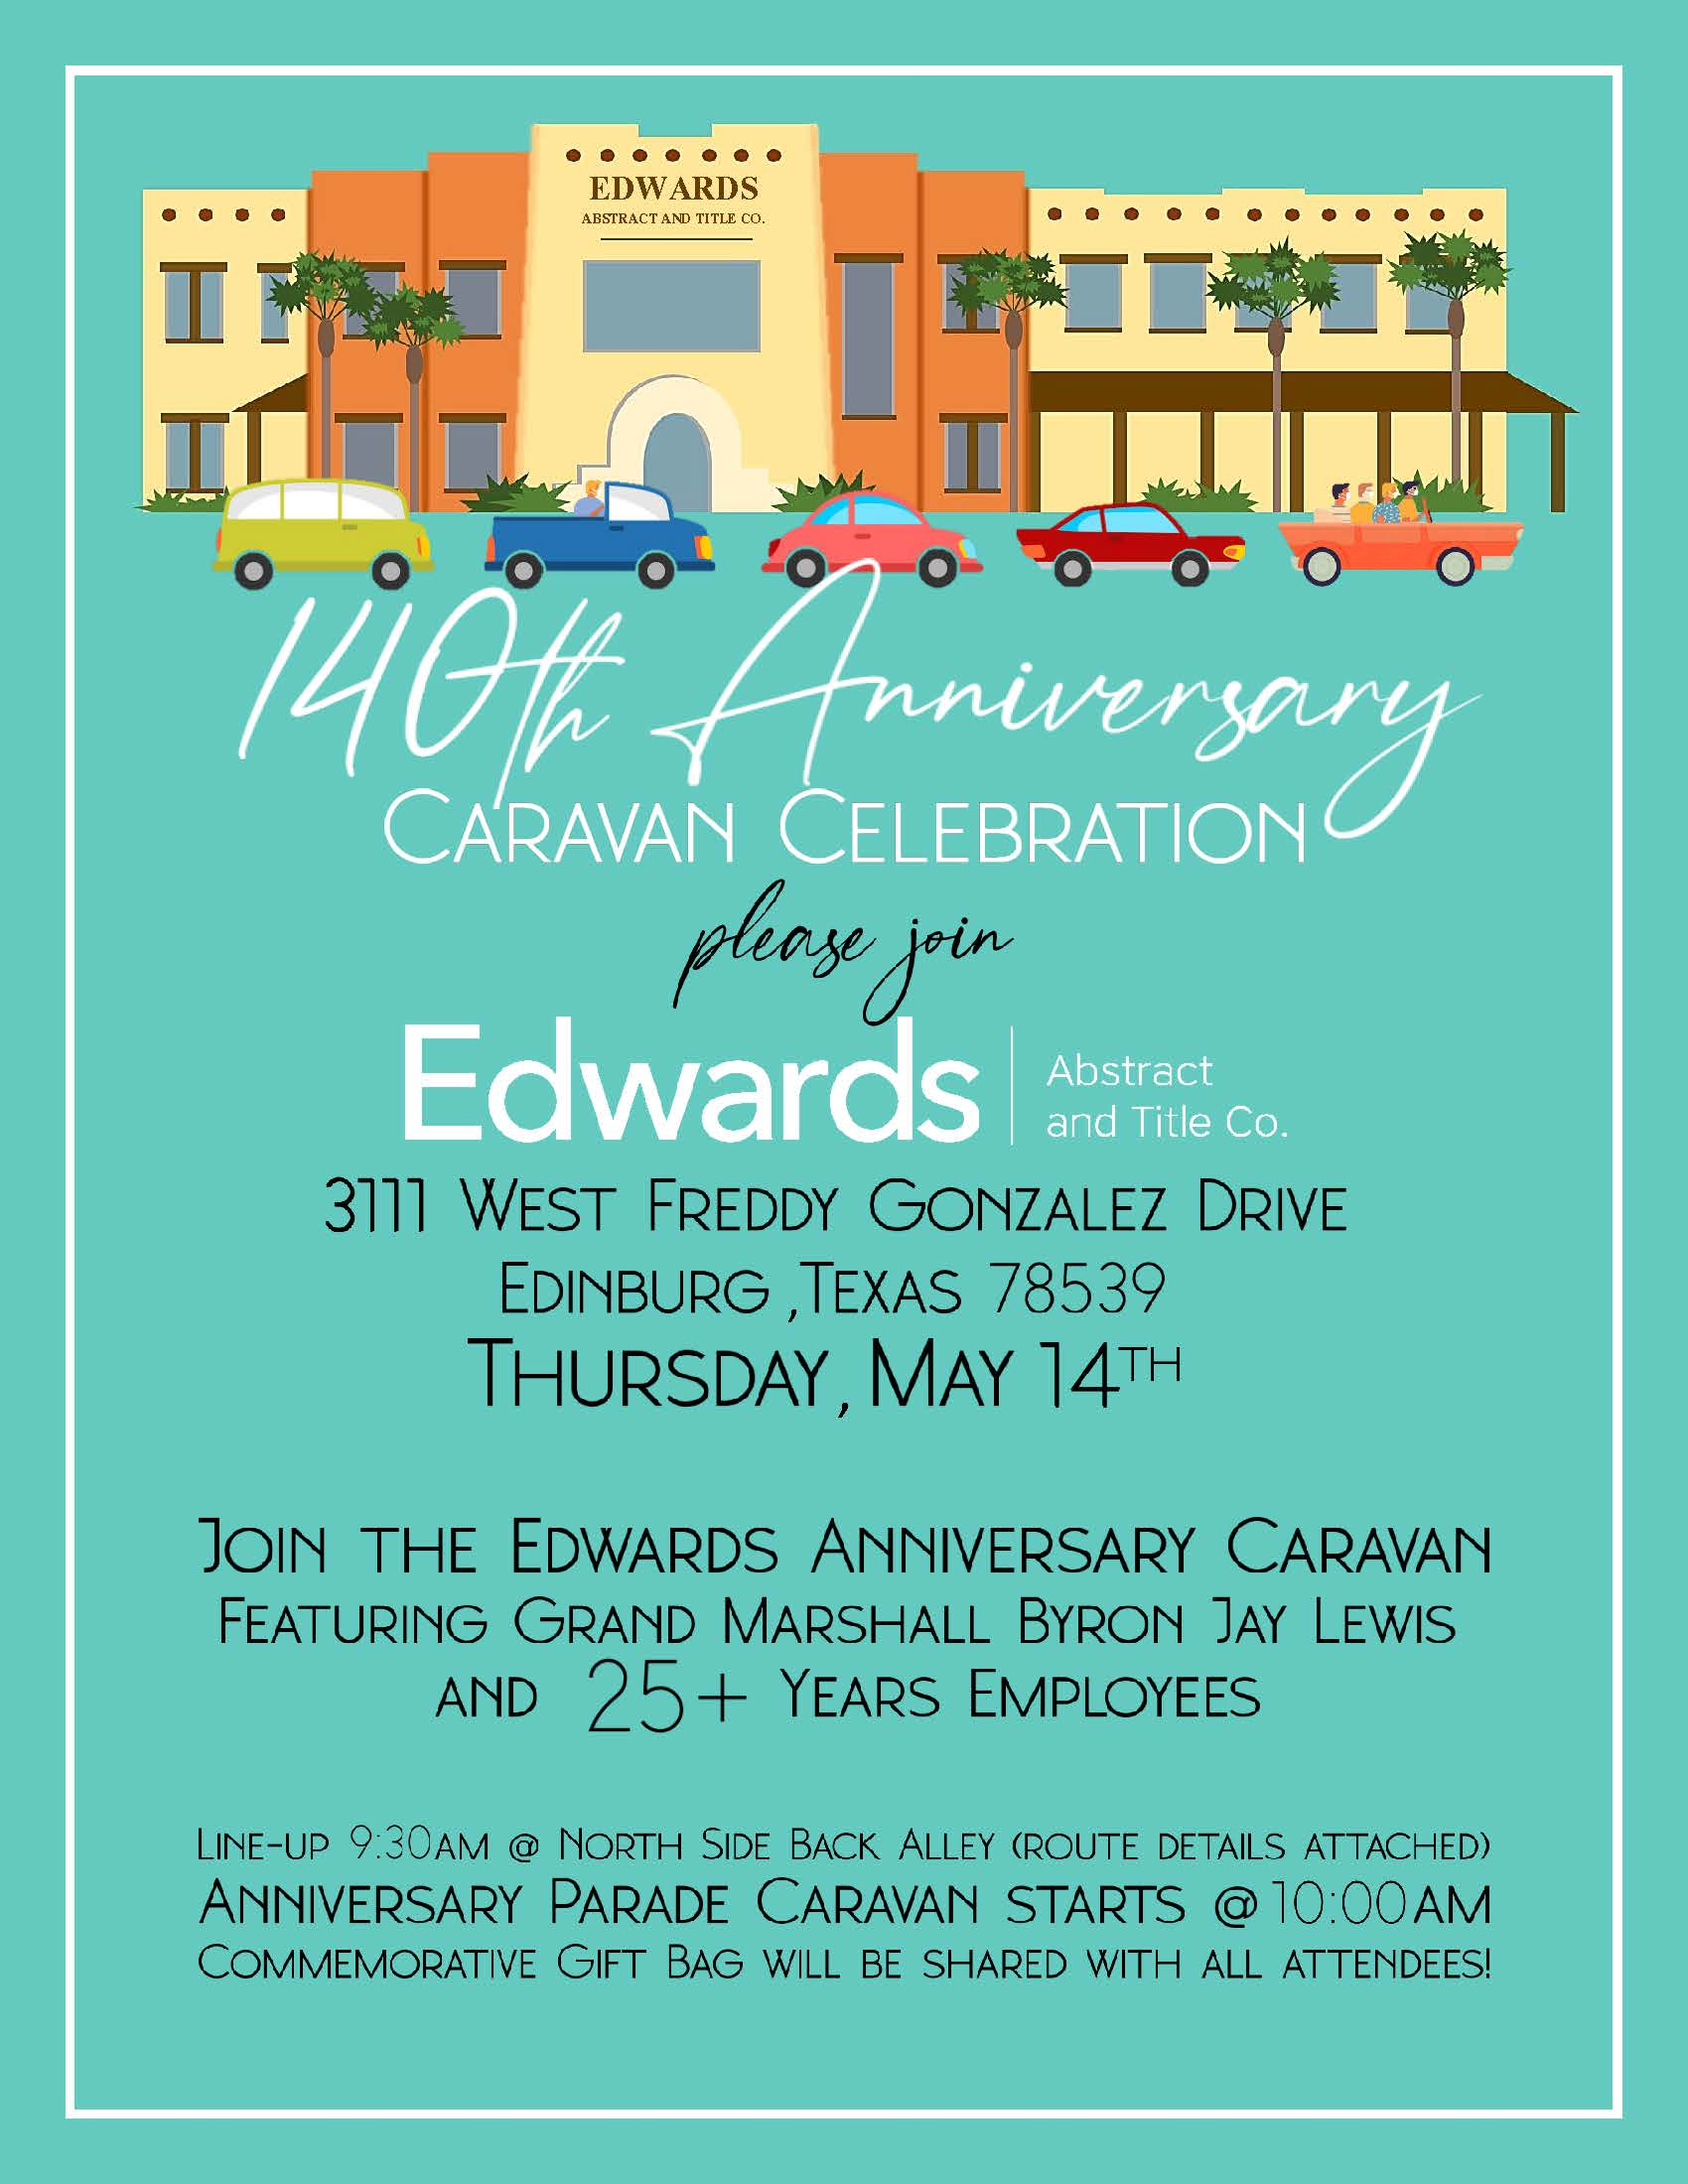 140th Anniversary Caravan Celebration